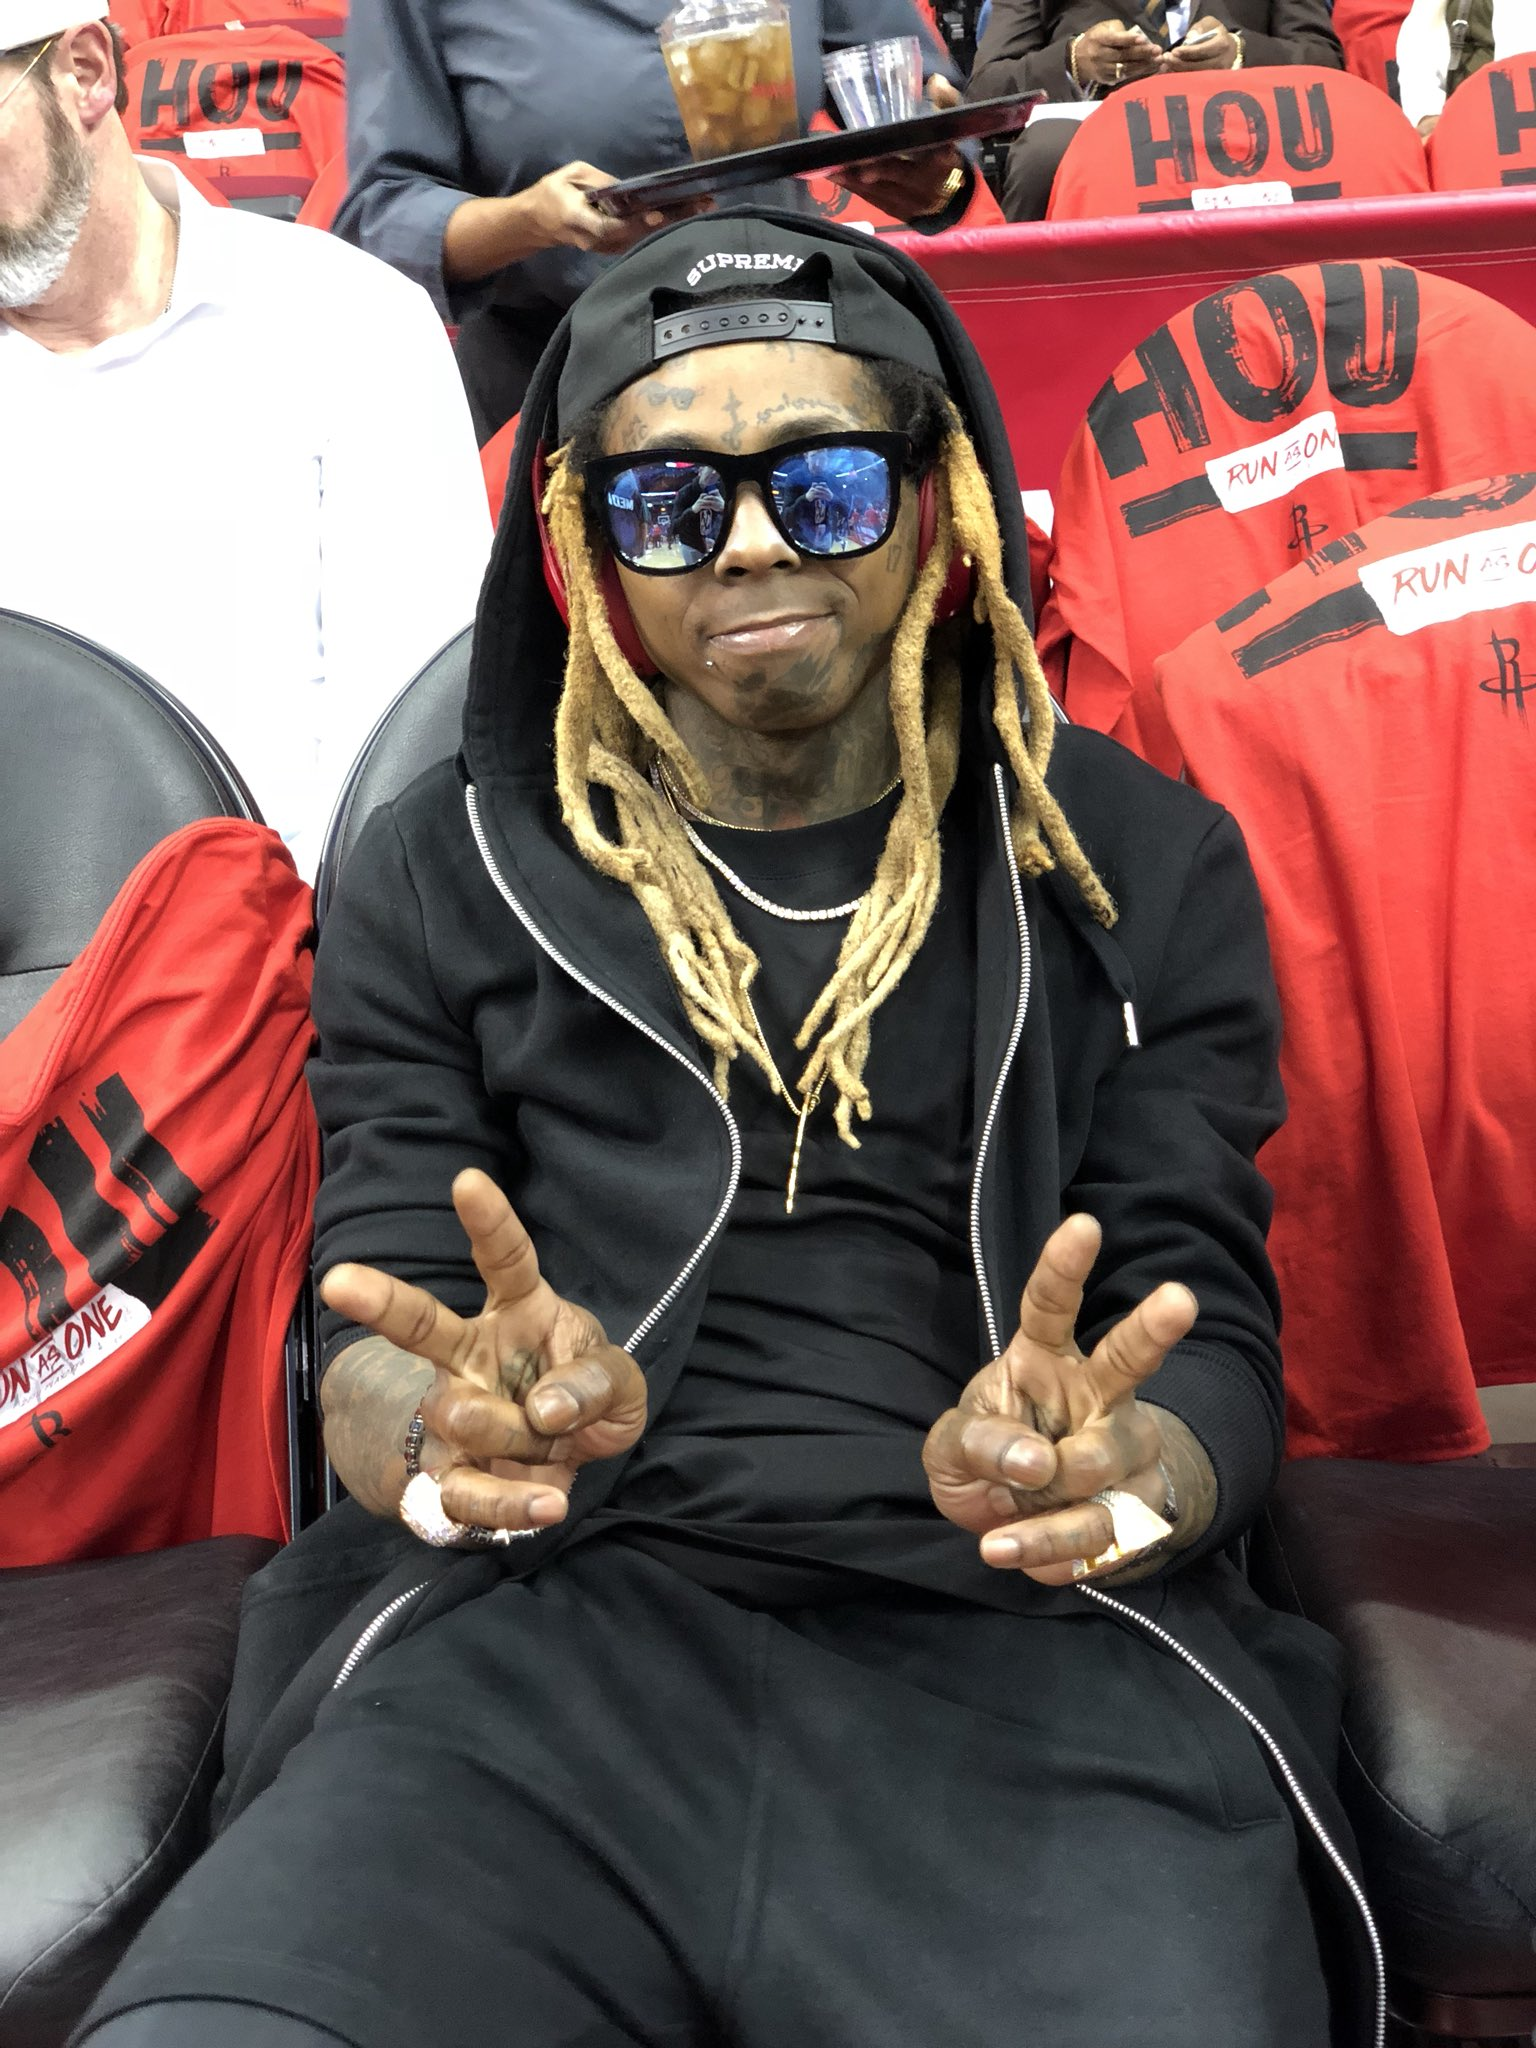 Game 2 vibes. #NBACelebRow @LilTunechi https://t.co/KnfPrw0yoS